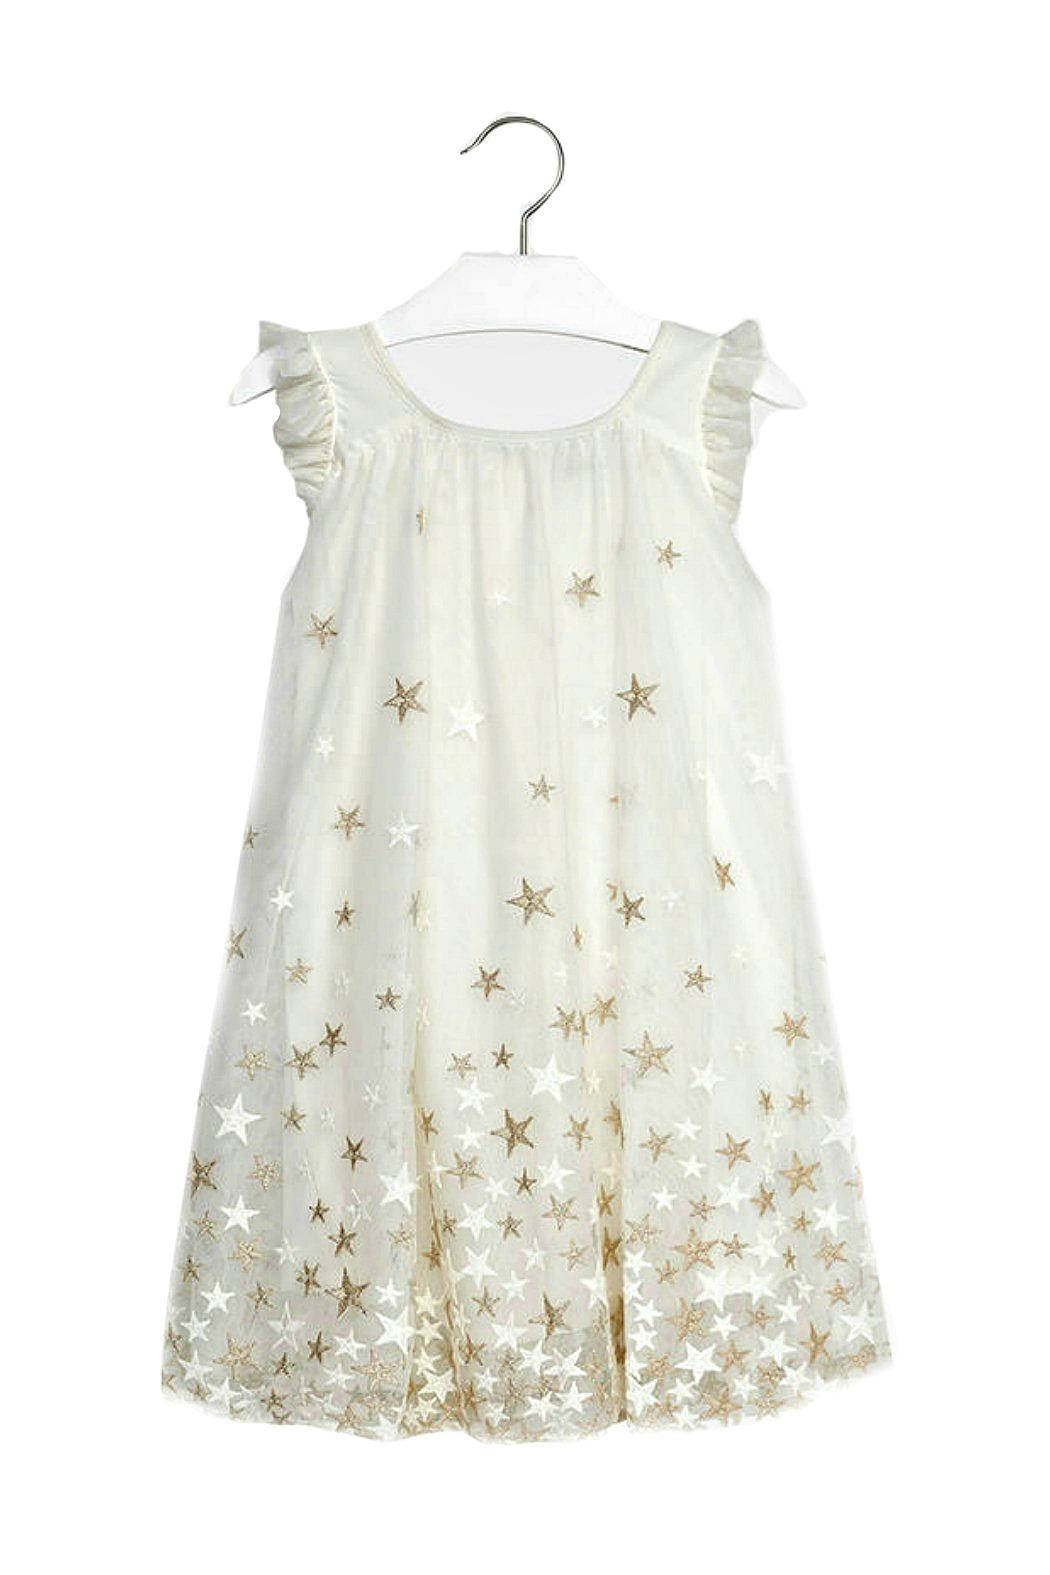 b9848cae1 Mayoral Embroidered Star Dress from South Carolina by The Children s ...